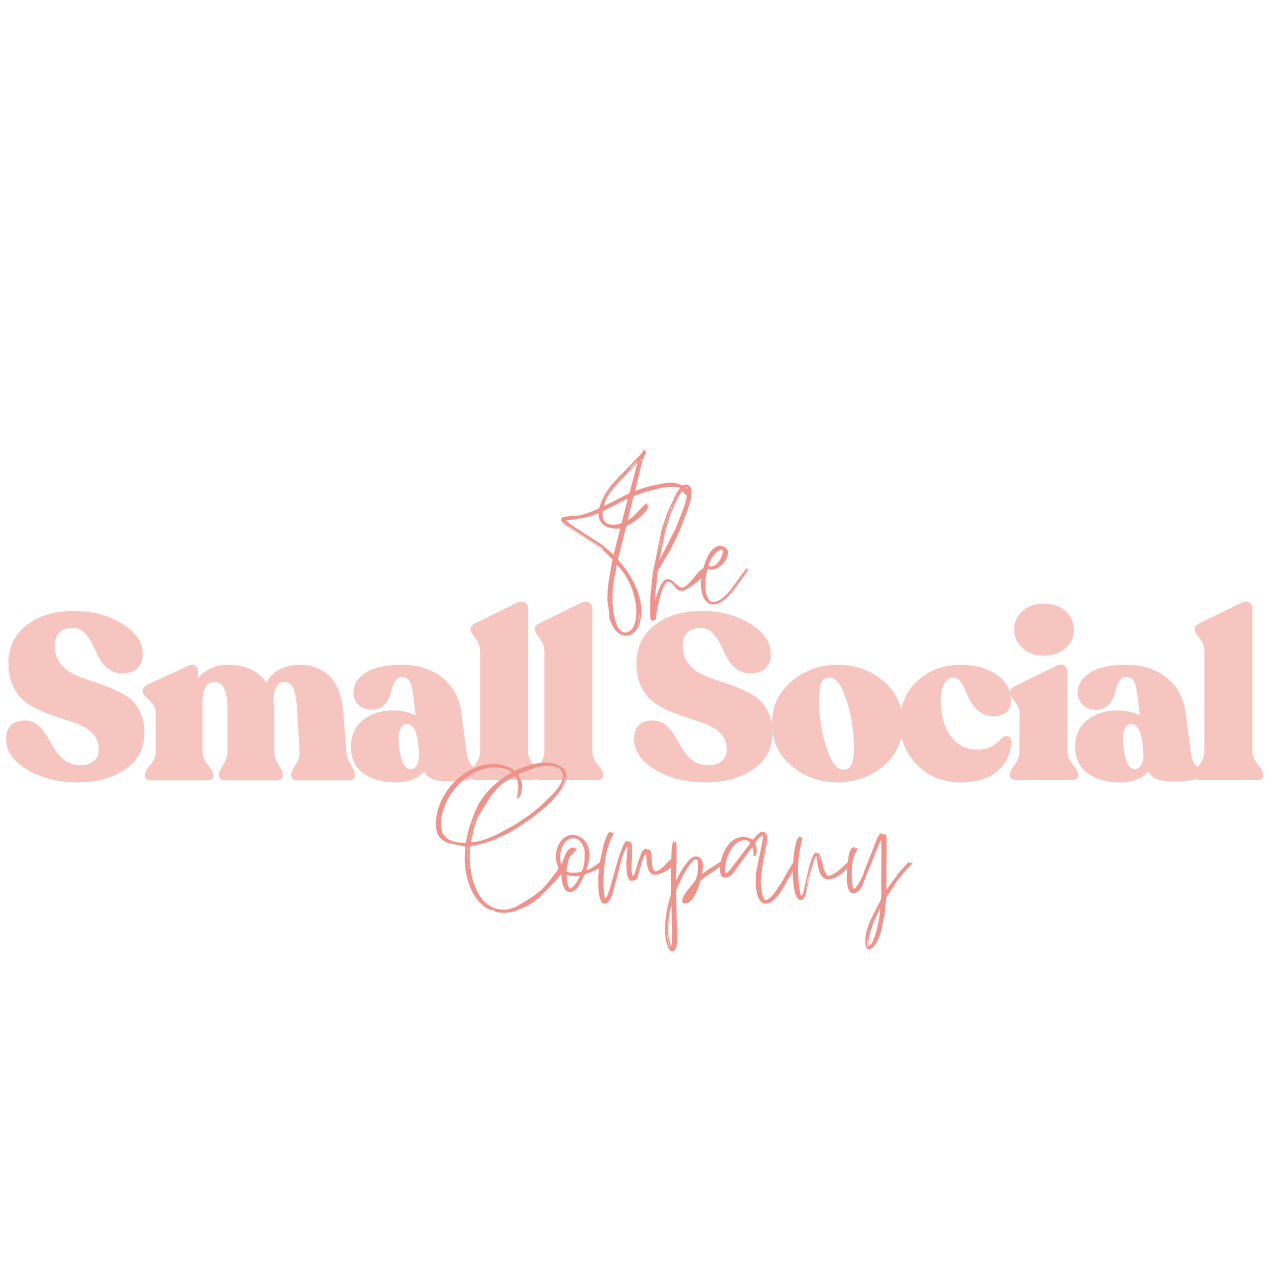 The Small Social Company